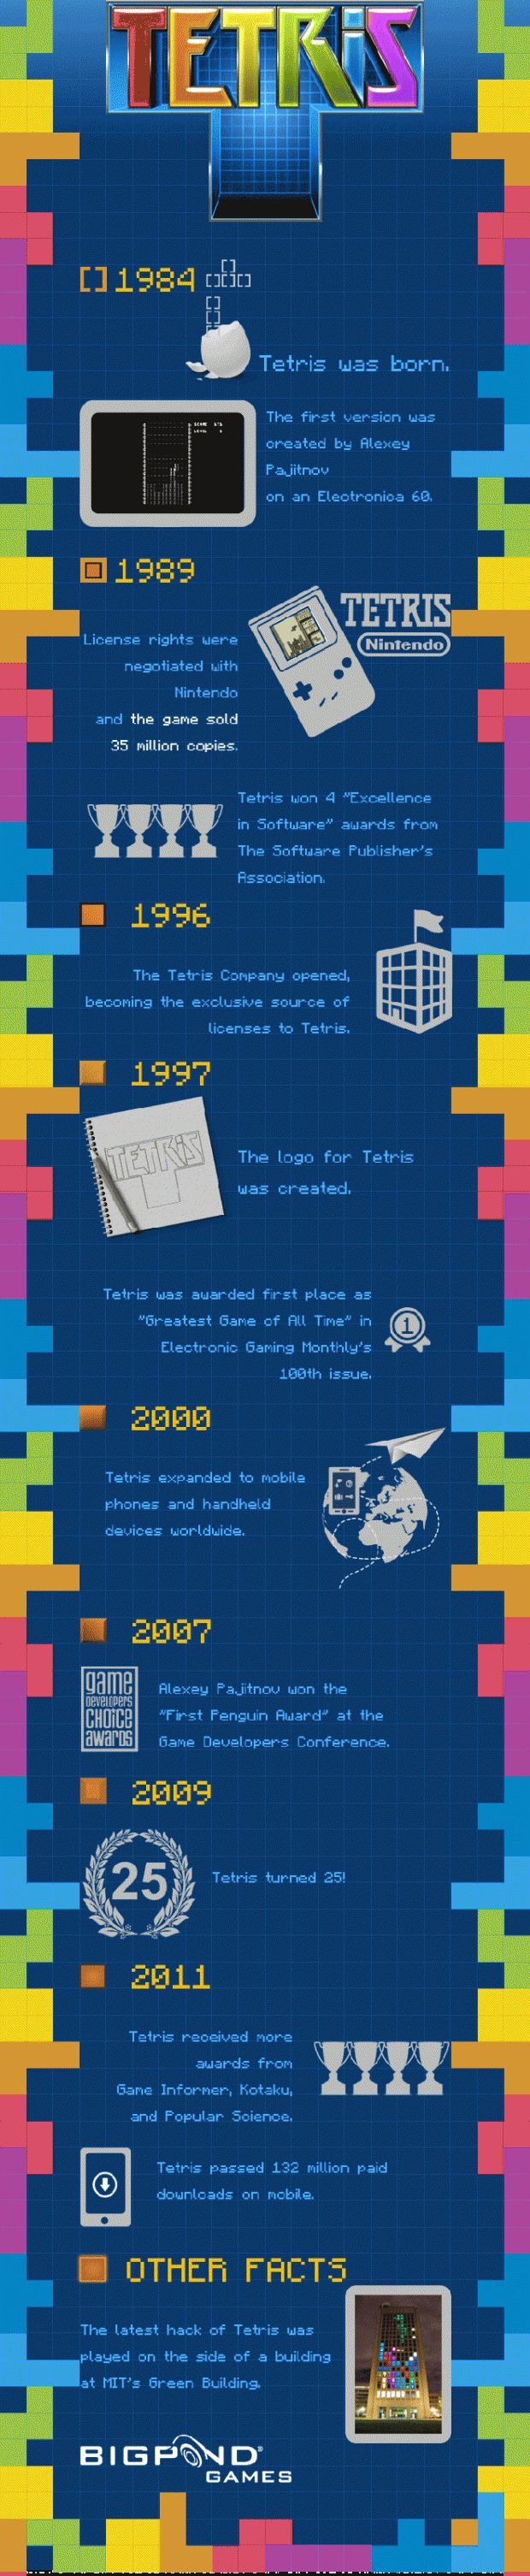 Great facts about the history of tetris ;)